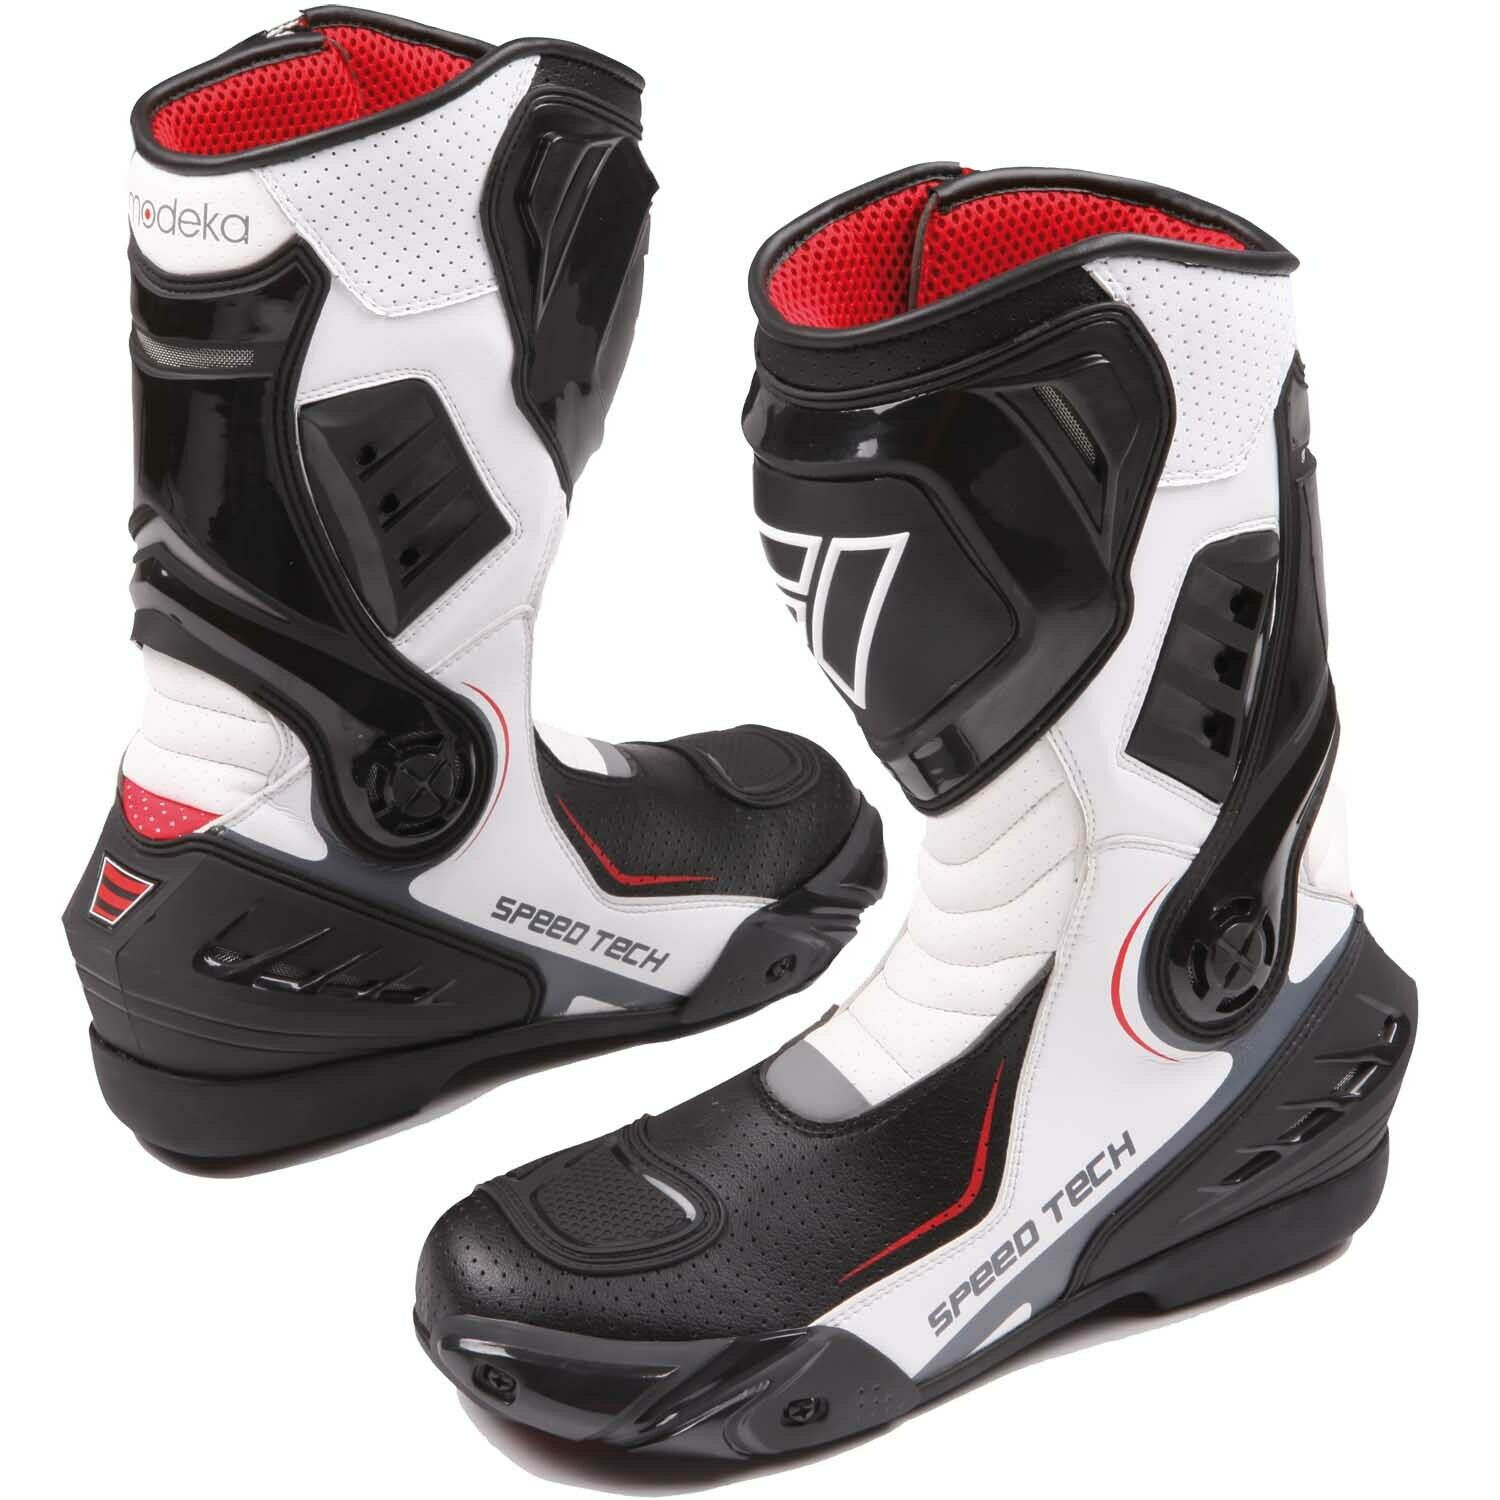 Modeka Speed Tech Men's Sports Motorcycle Boots Leather - Black White